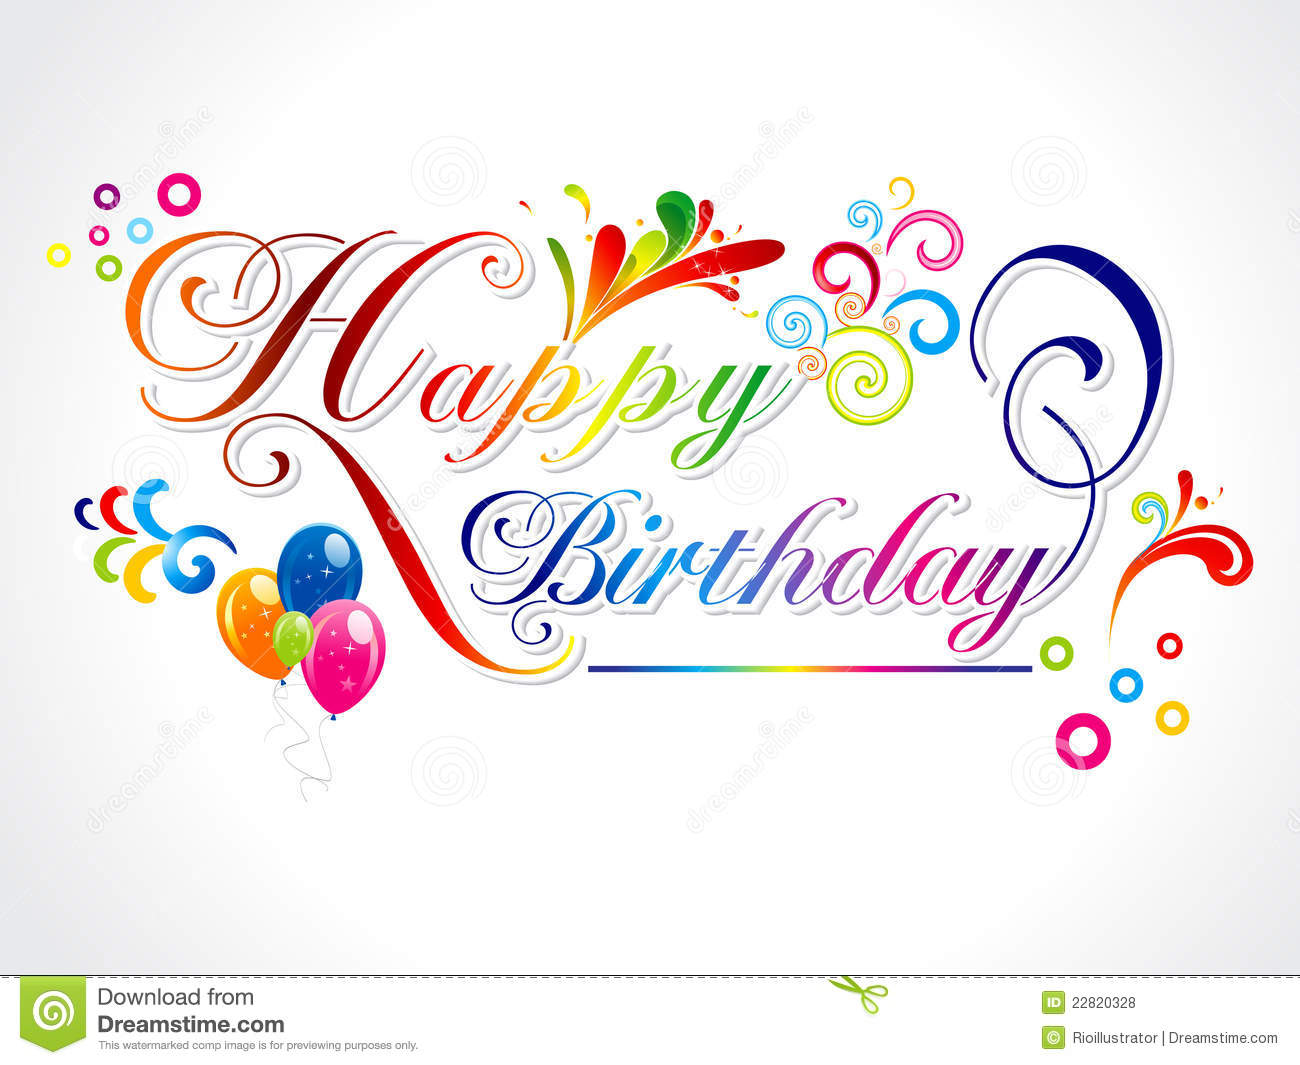 (8) Birthday Card  Birthday Greetings Download Free